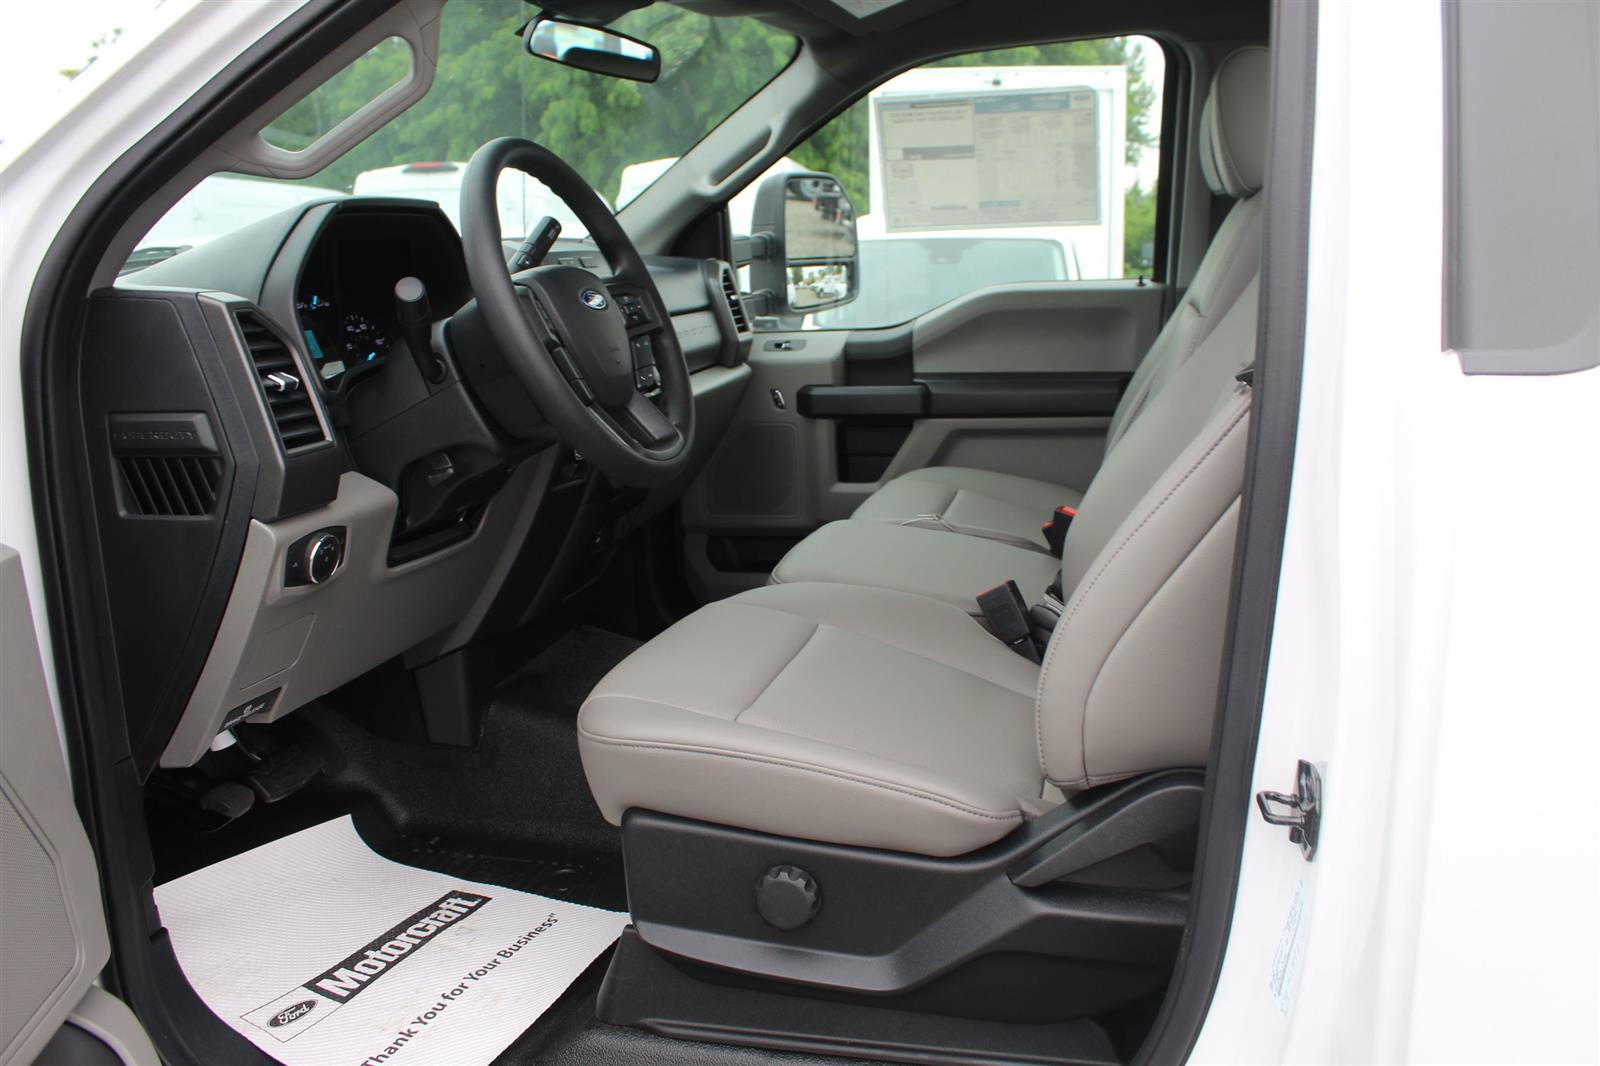 2020 Ford F-550 Regular Cab DRW 4x2, Cab Chassis #E9257 - photo 31